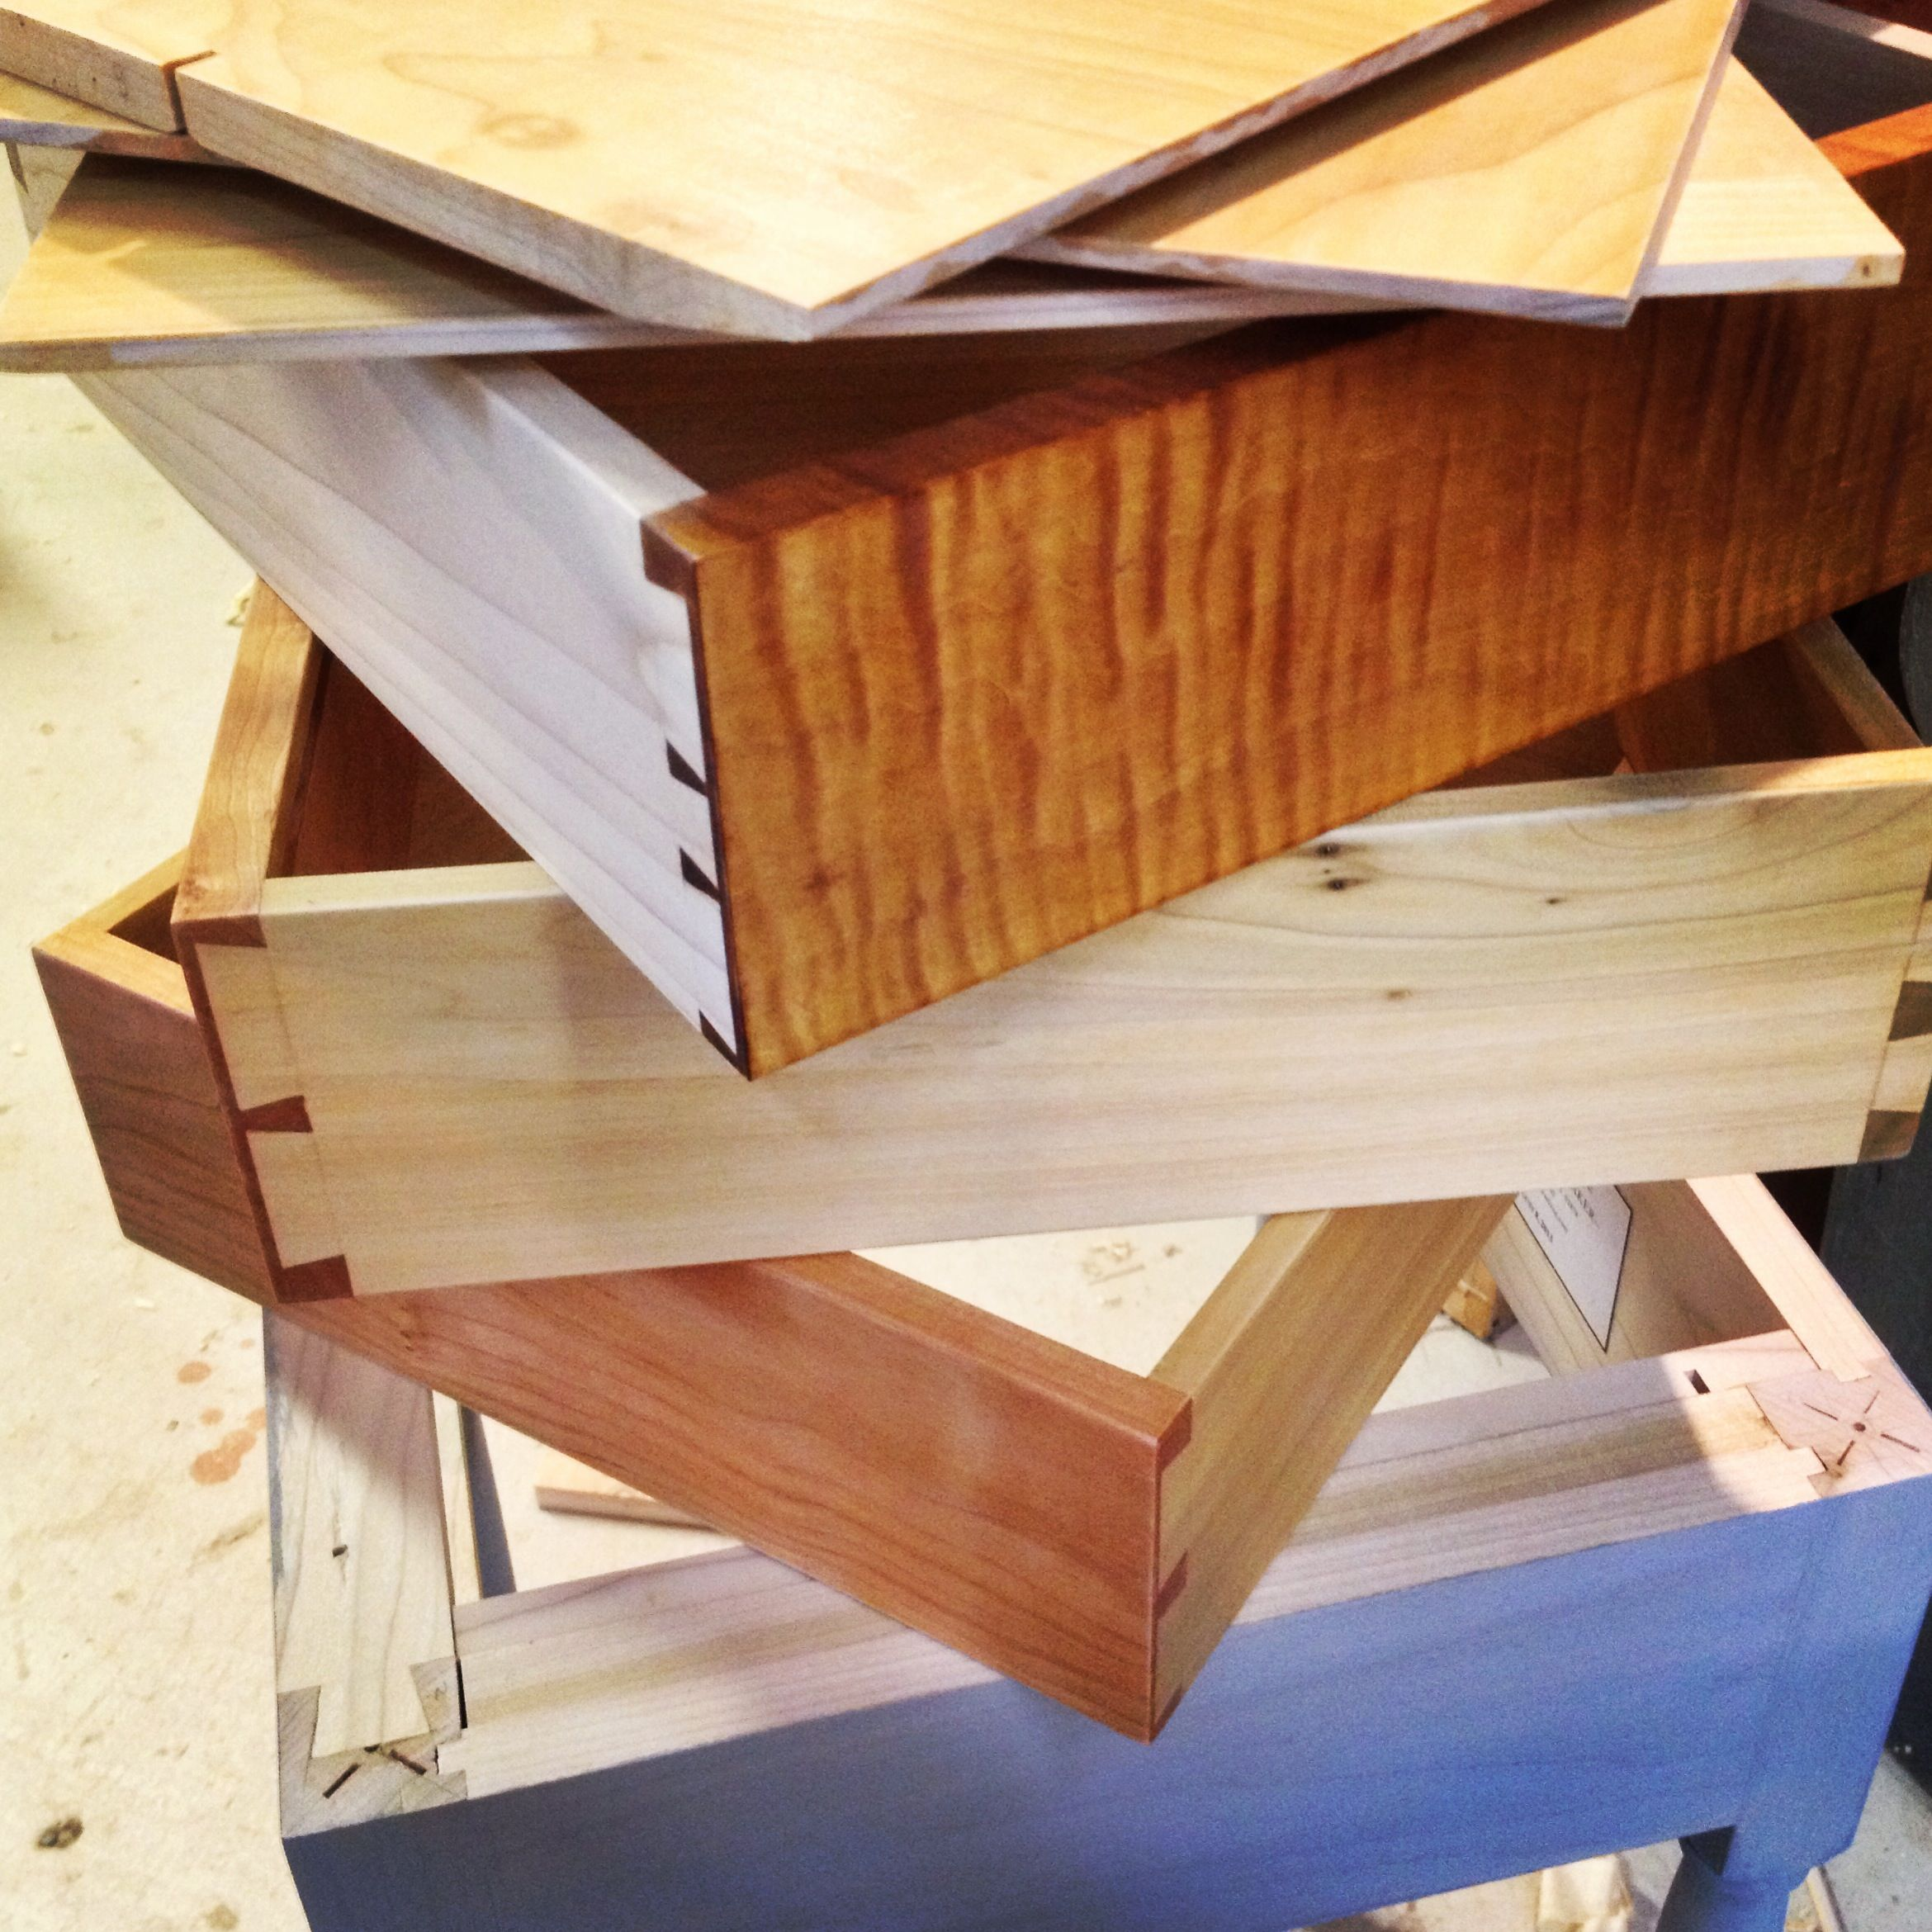 HANDCUT DOVETAIL JOINERY